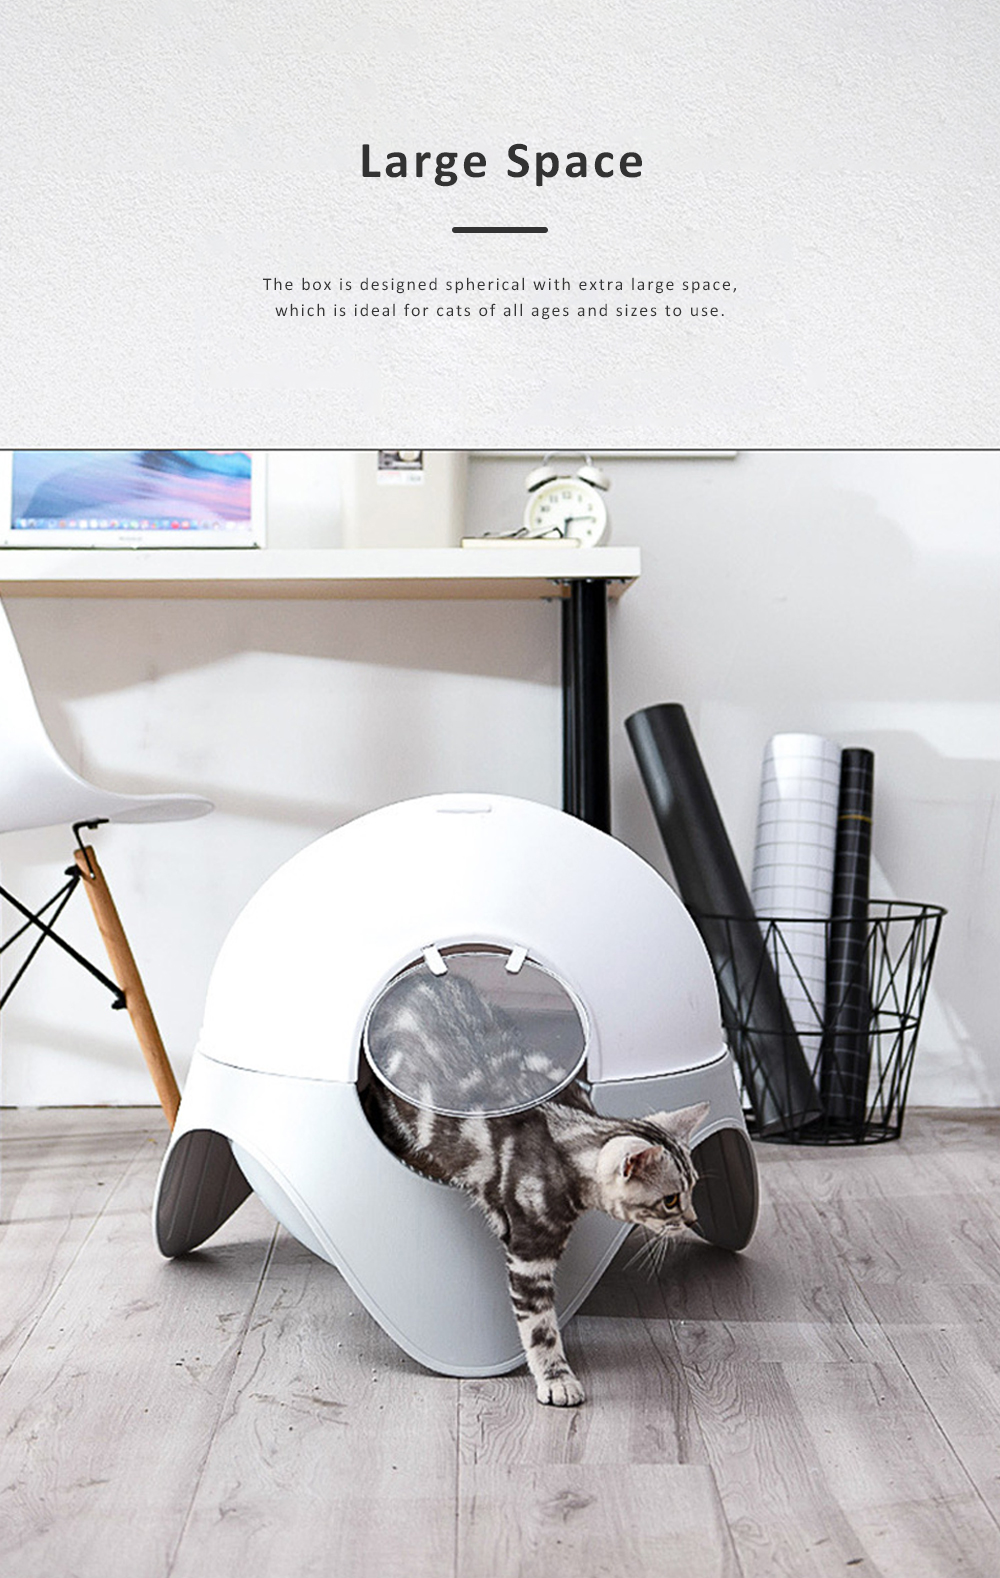 Space Capsule Cat Box, Totally Enclosed Space Capsule Extra Large Toilet for Cats Splash-proof Deodorization 2